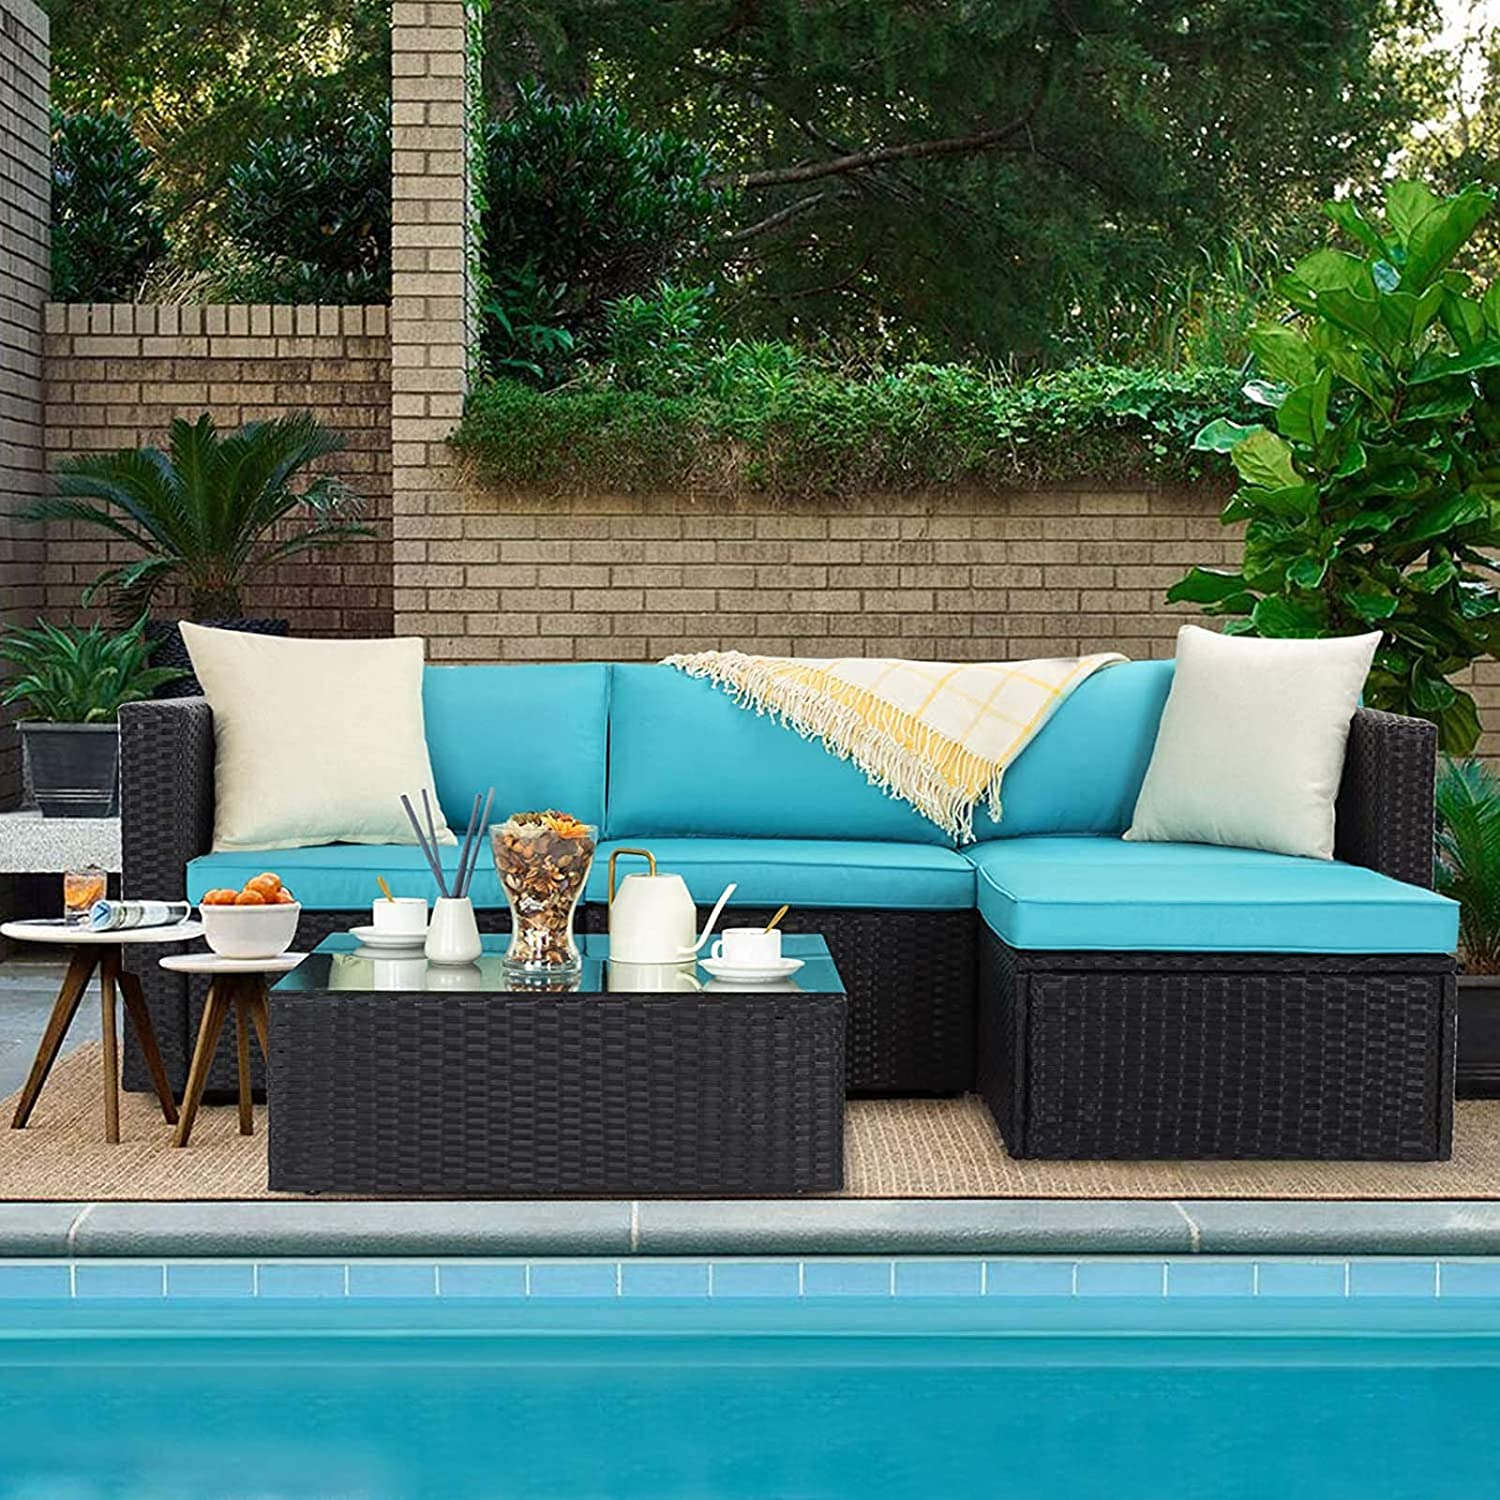 VITESSE 5 Pieces Outdoor Furniture latest Animer and price revision Sectional Patio Furnitu Sets